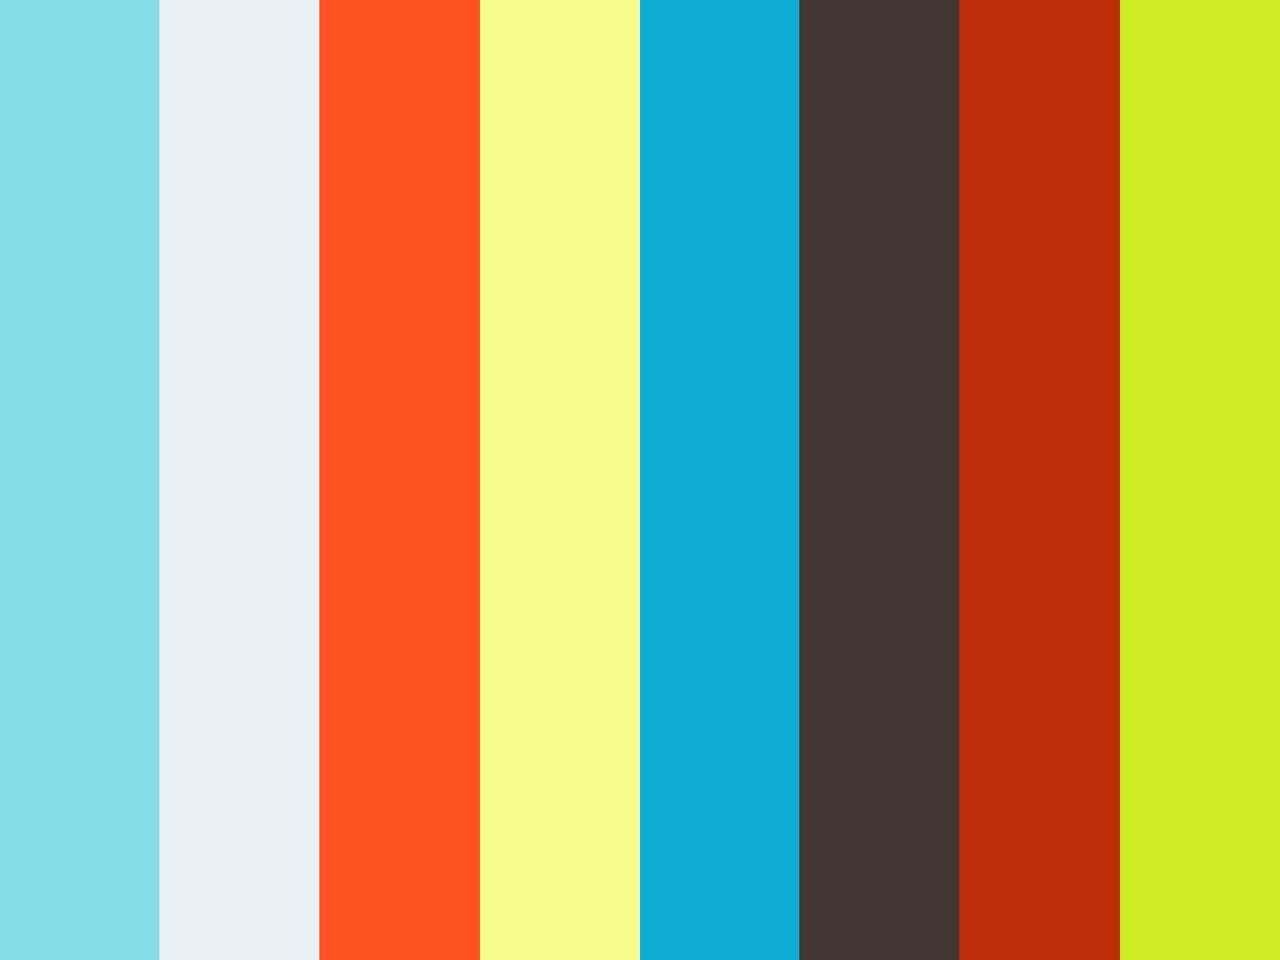 Building Community Through Fellowship